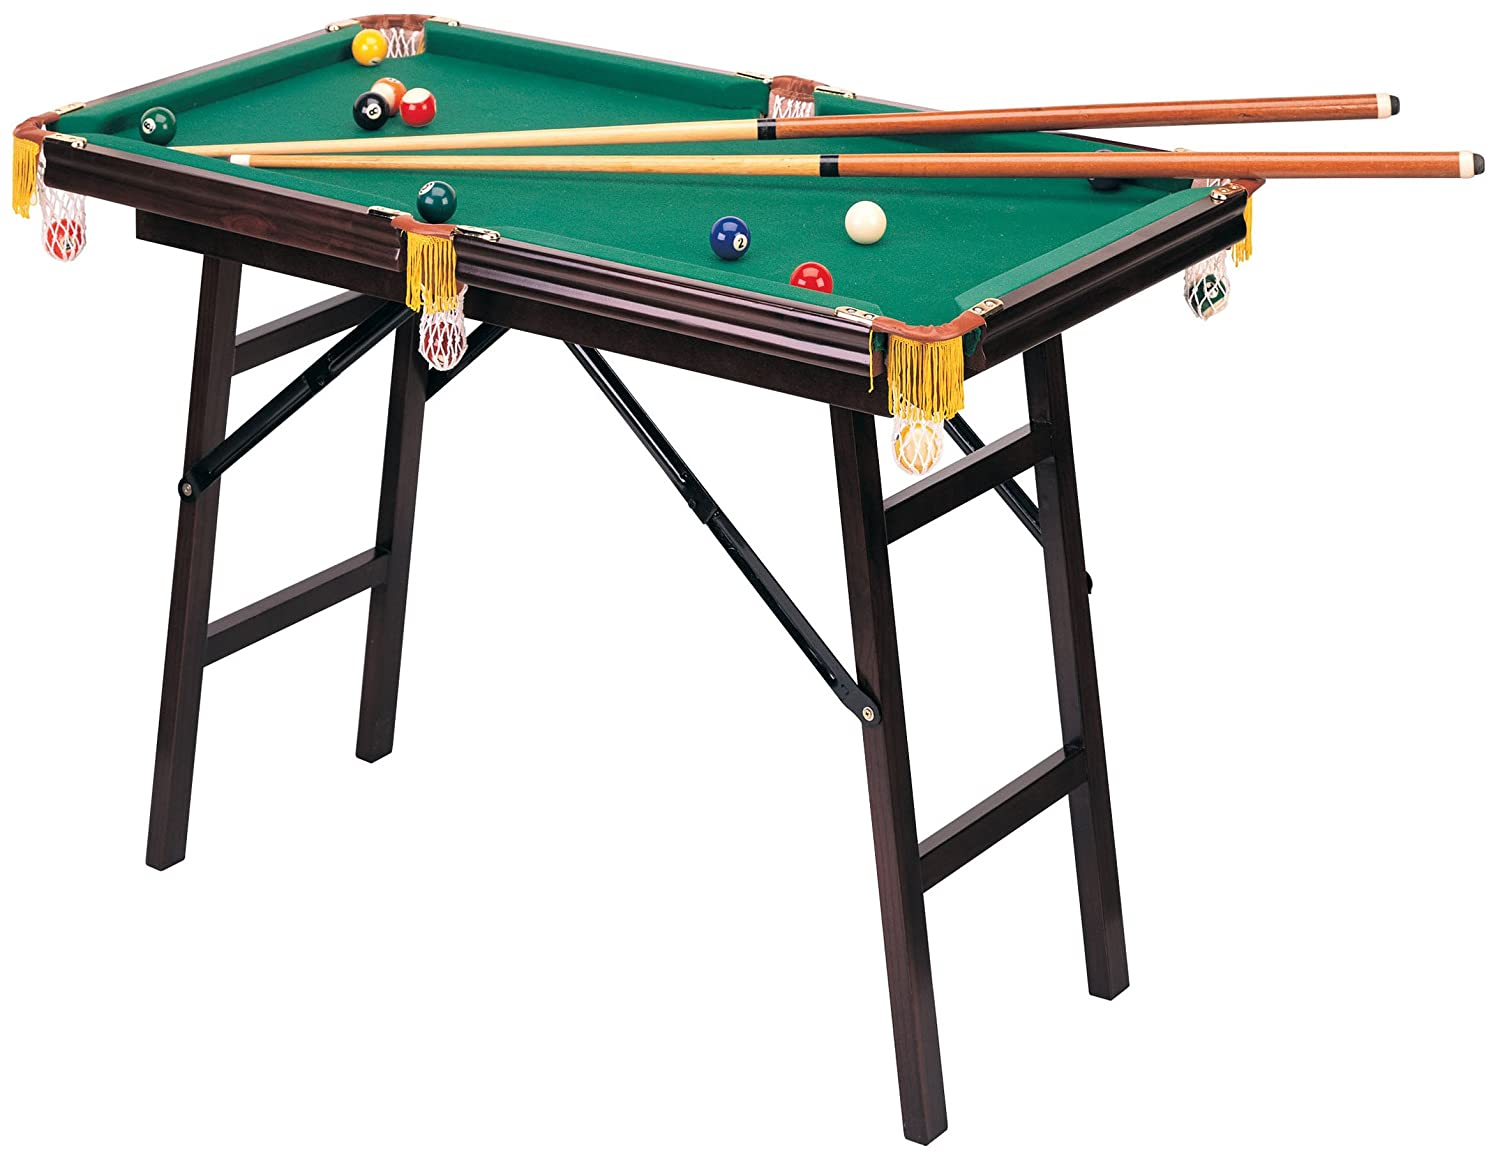 Beau Pretty, Slim And Colorful, This Mini Pool Table Is A Dream For Those Who  Have Little Money To Spend On This And Little Room Inside Their Homes.